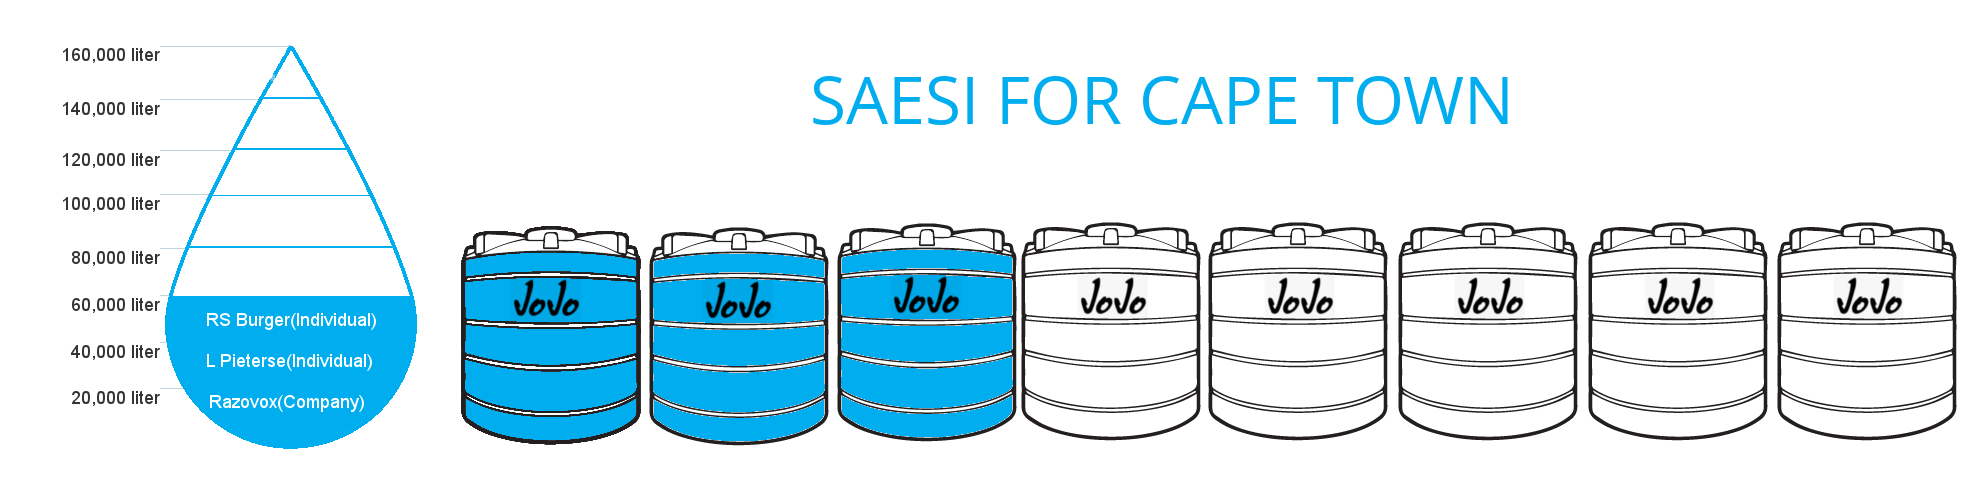 SAESI For Cape Town Water Project